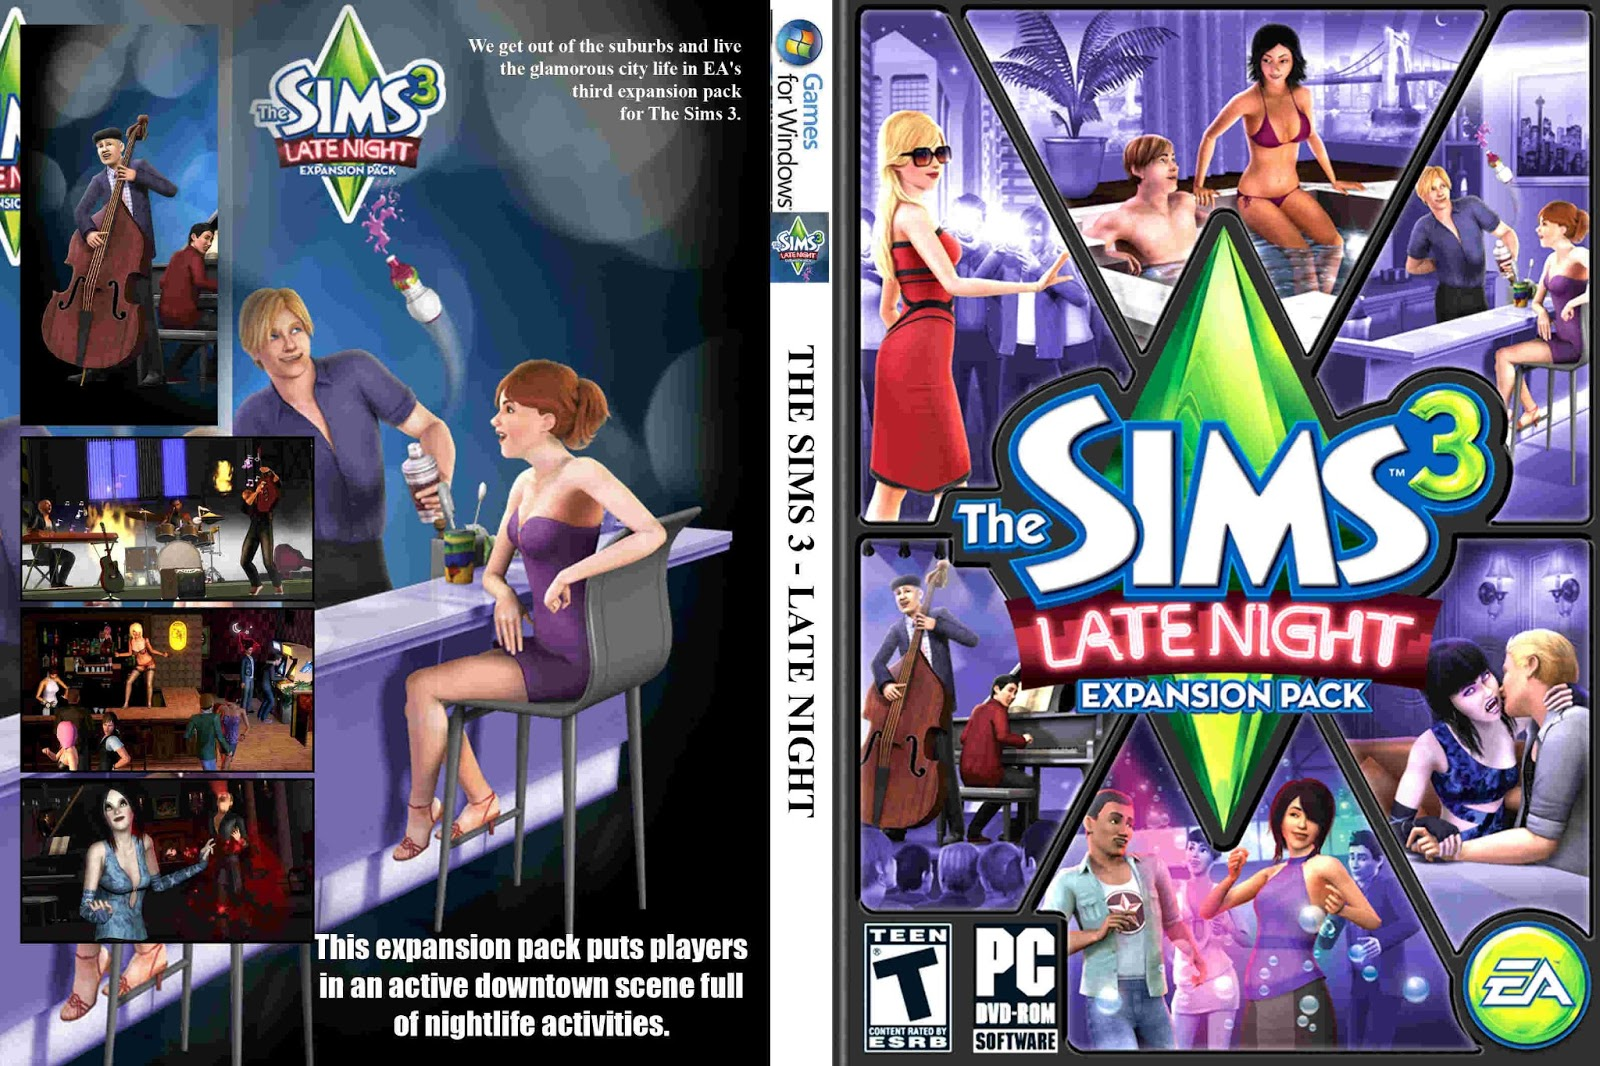 Lab Download Game Pc Offline Download The Sims 3 Late Night Full Putlocker